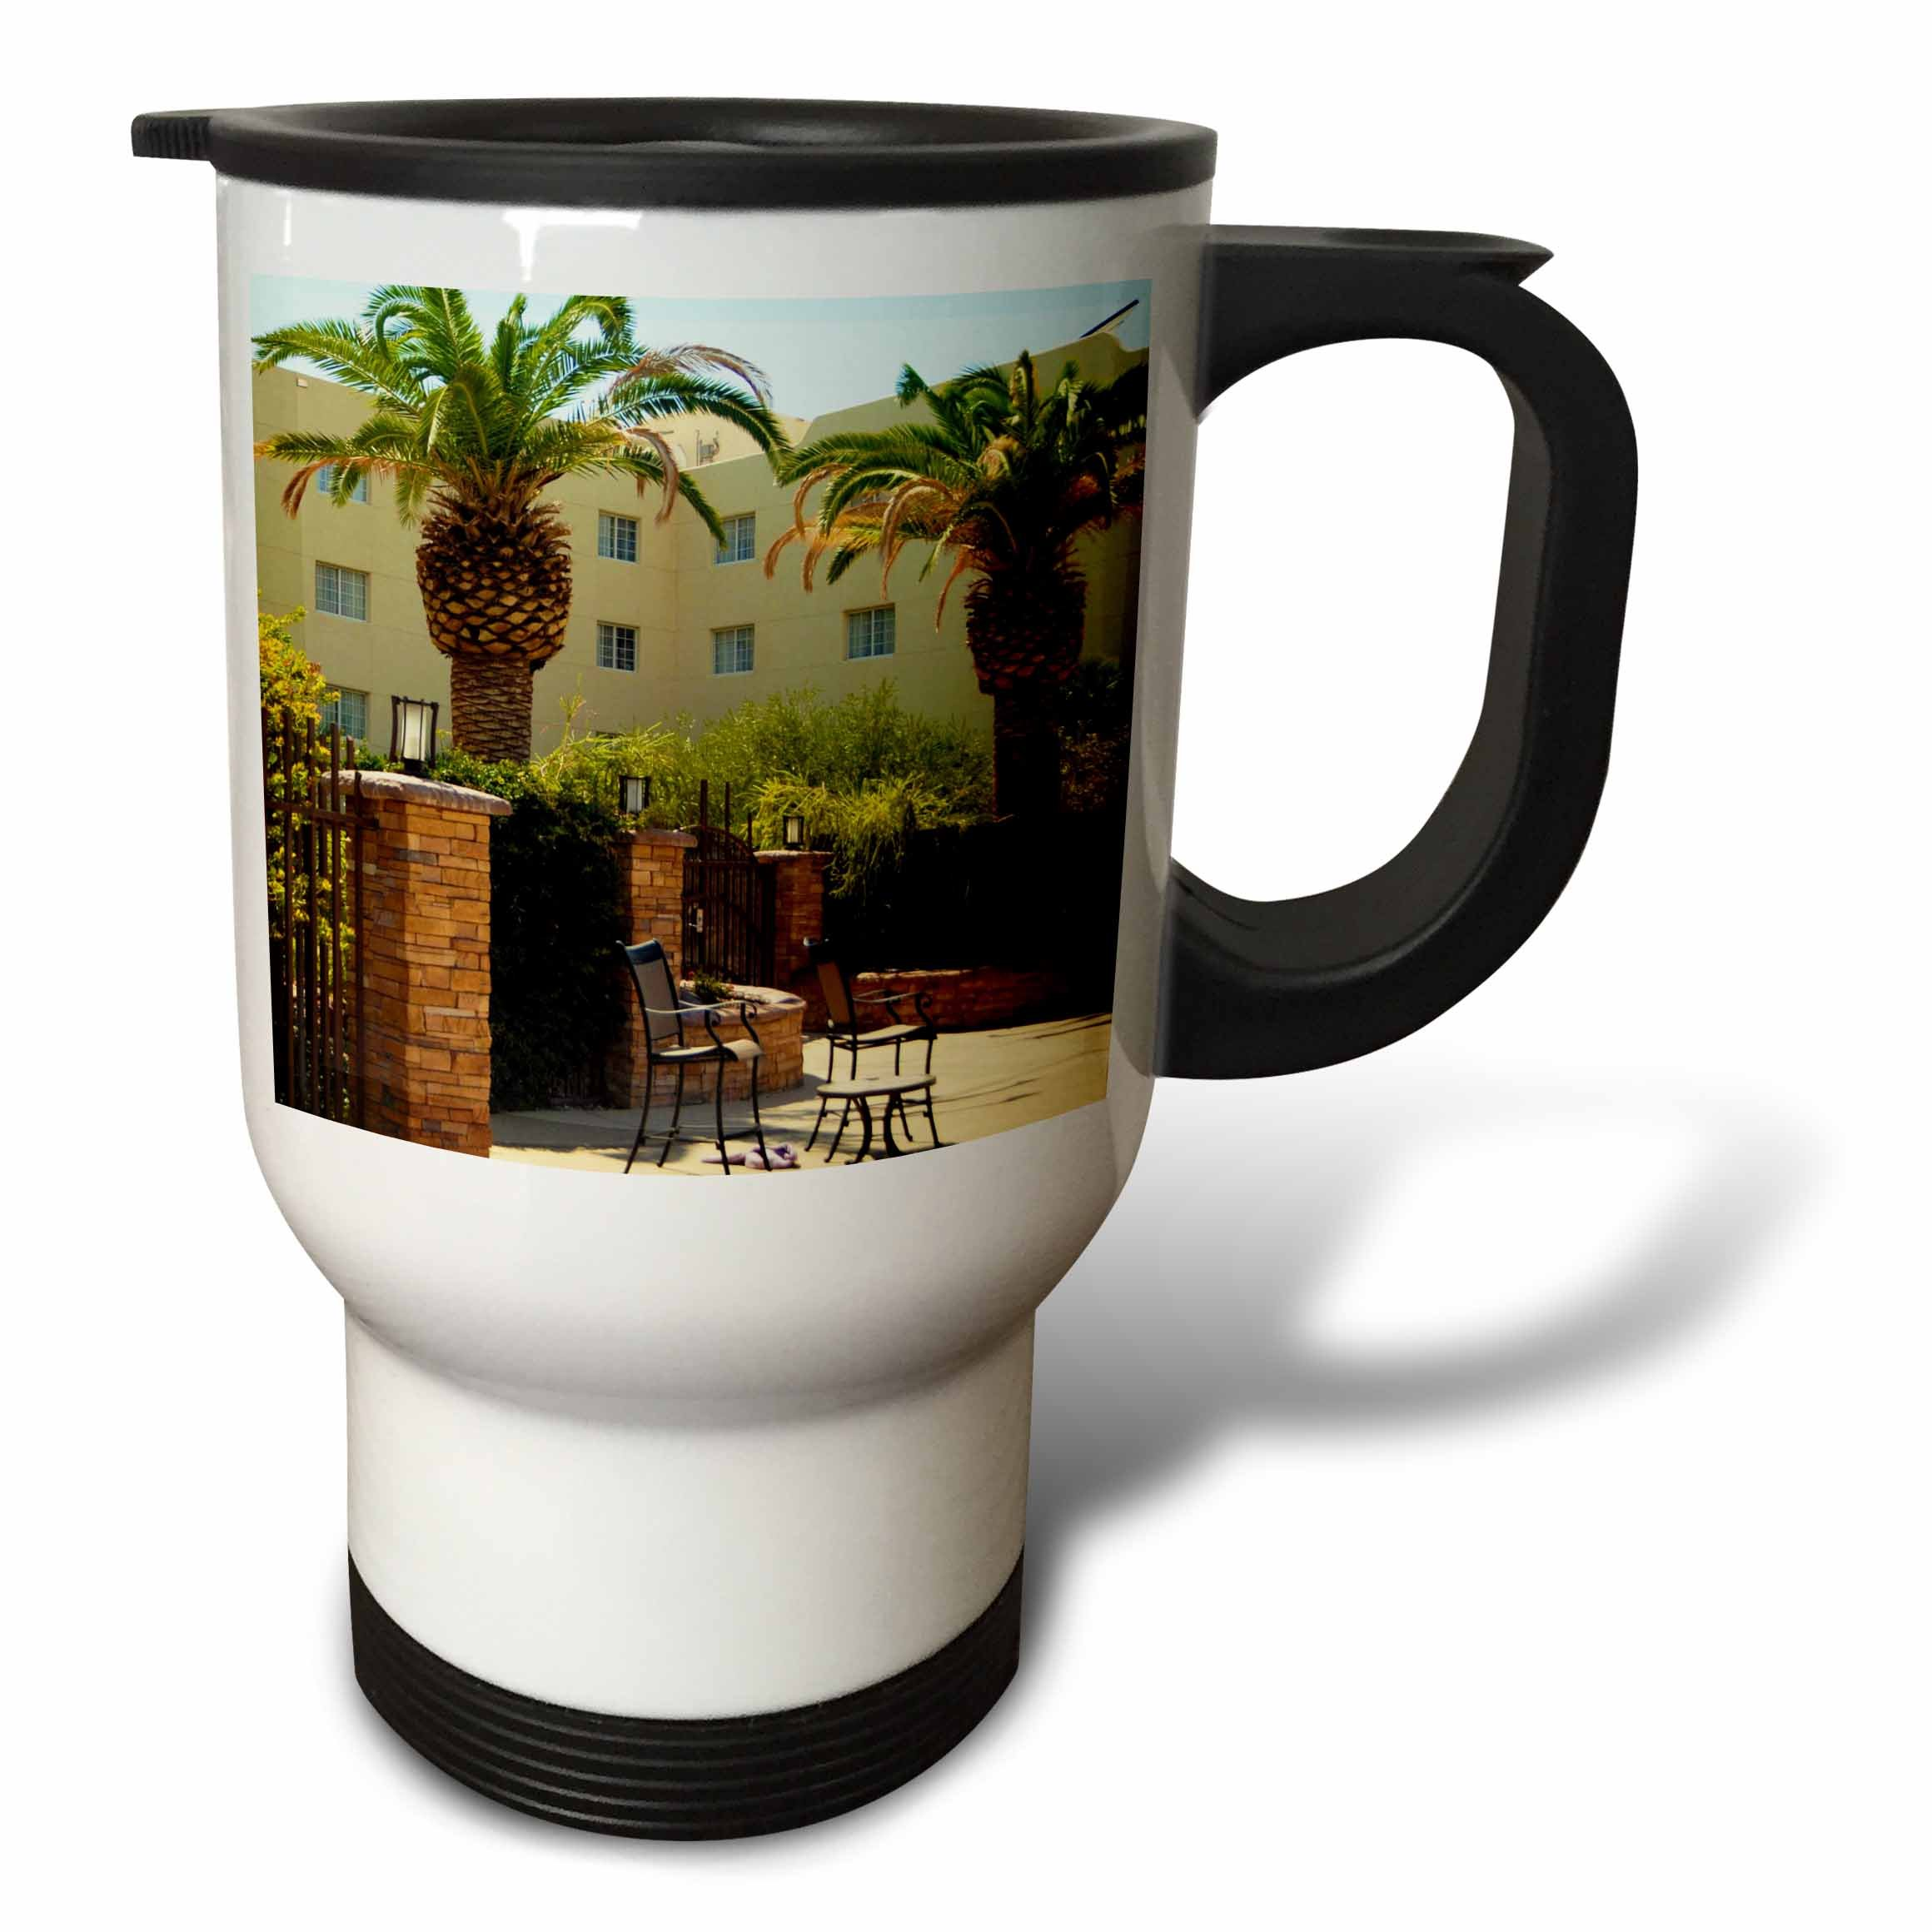 3dRose Jos Fauxtographee- Palms at Hotel - A hotel in Mesquite Nevada with palm trees and chairs - 14oz Stainless Steel Travel Mug (tm_273463_1)